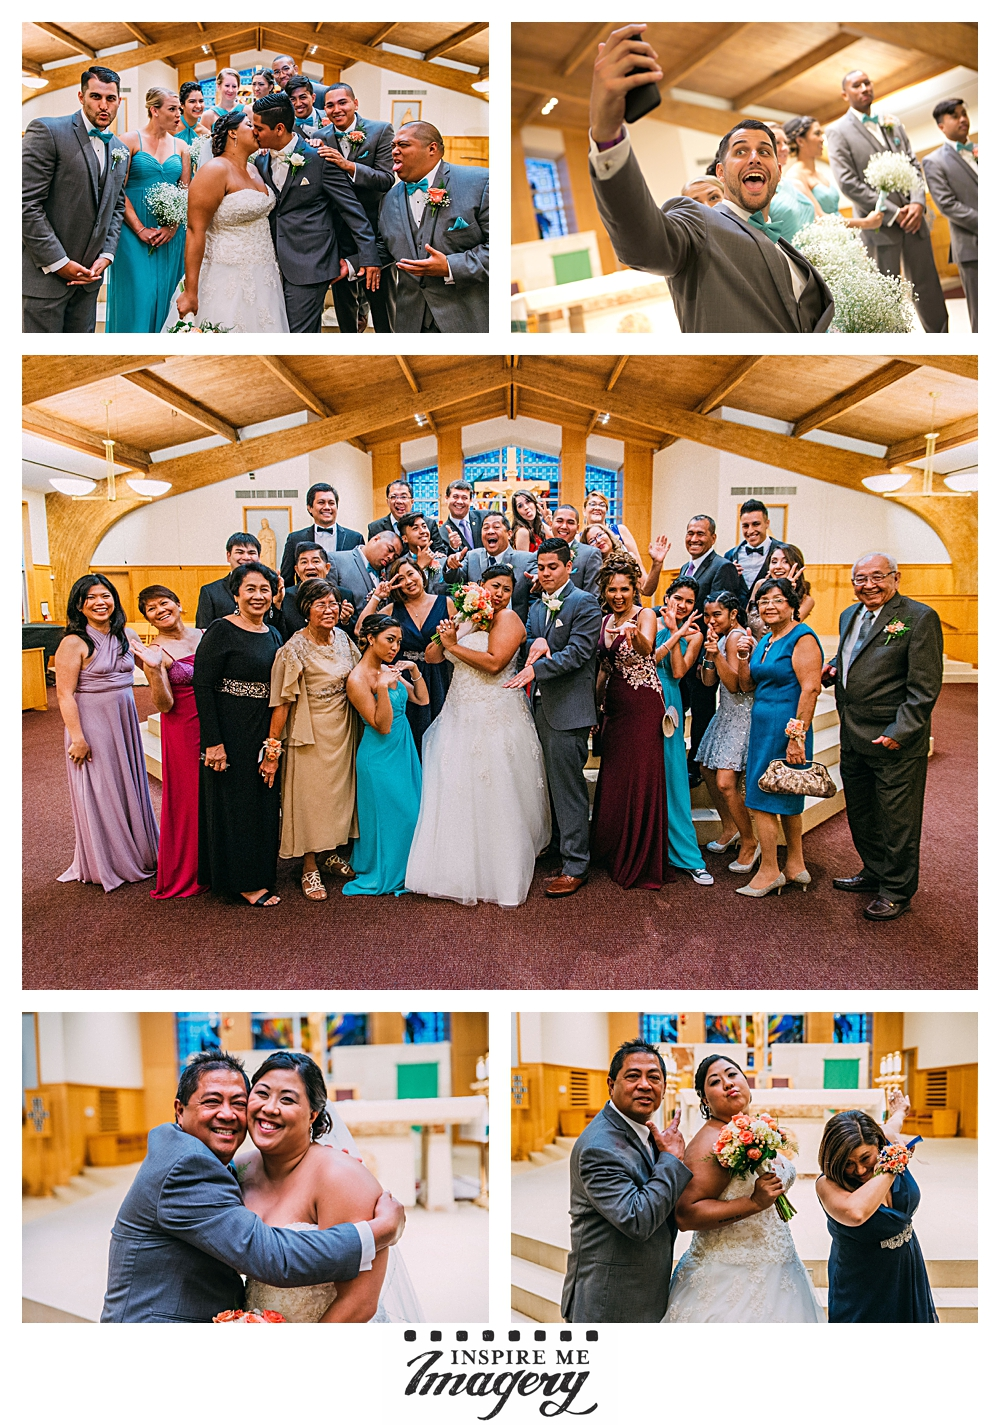 The time set aside for formal family photos usually isn't the most exciting part of our day, but this group was so awesome to work with. Nothing but laughter and smiles.